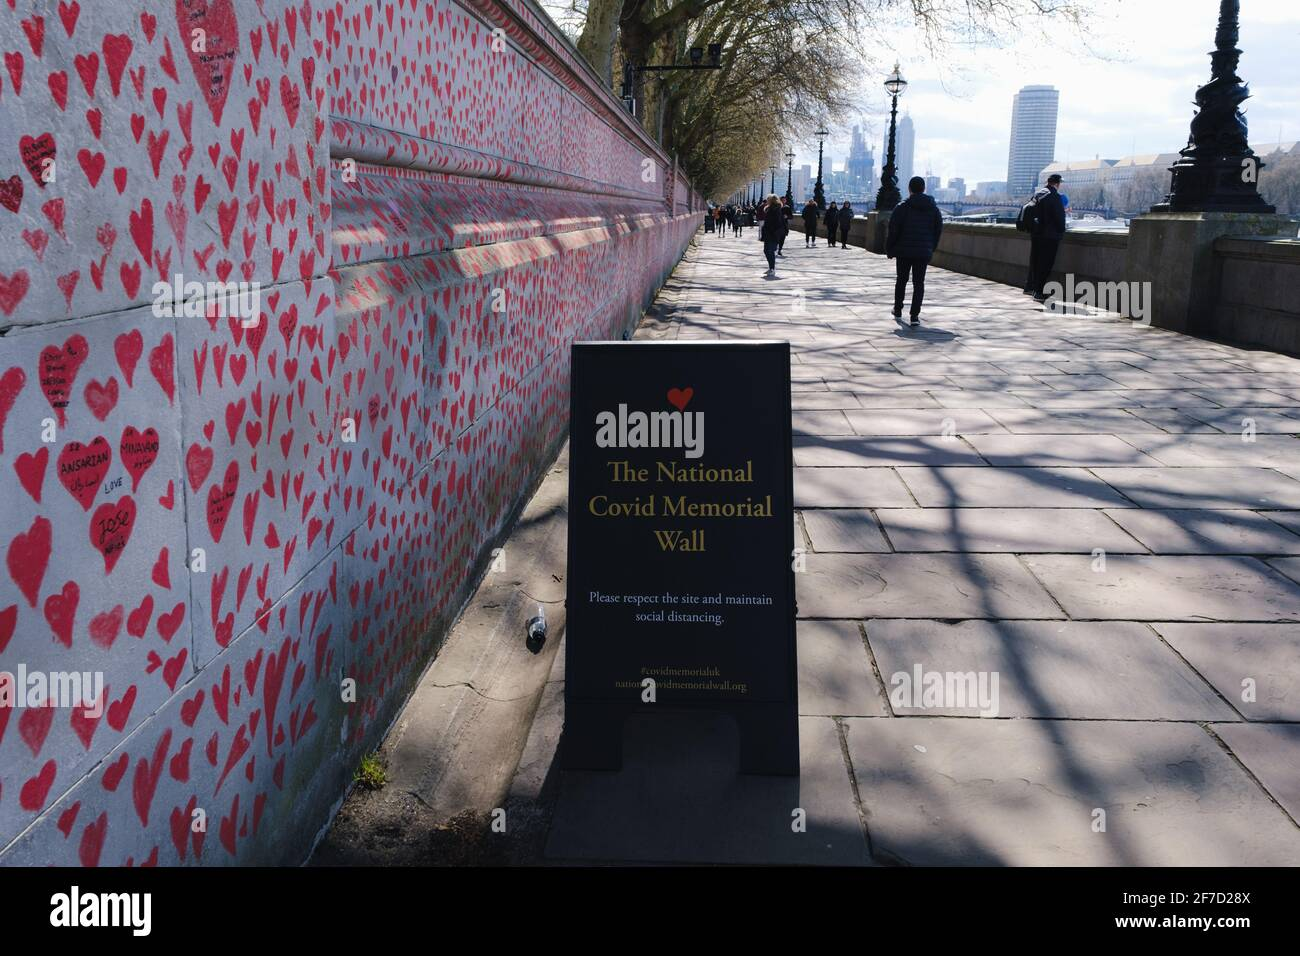 London, UK -April  2021. The National Covid Memorial Wall. Nearly 150,000 hearts will be painted by volunteers, one for each Covid-19 victim in the UK Stock Photo